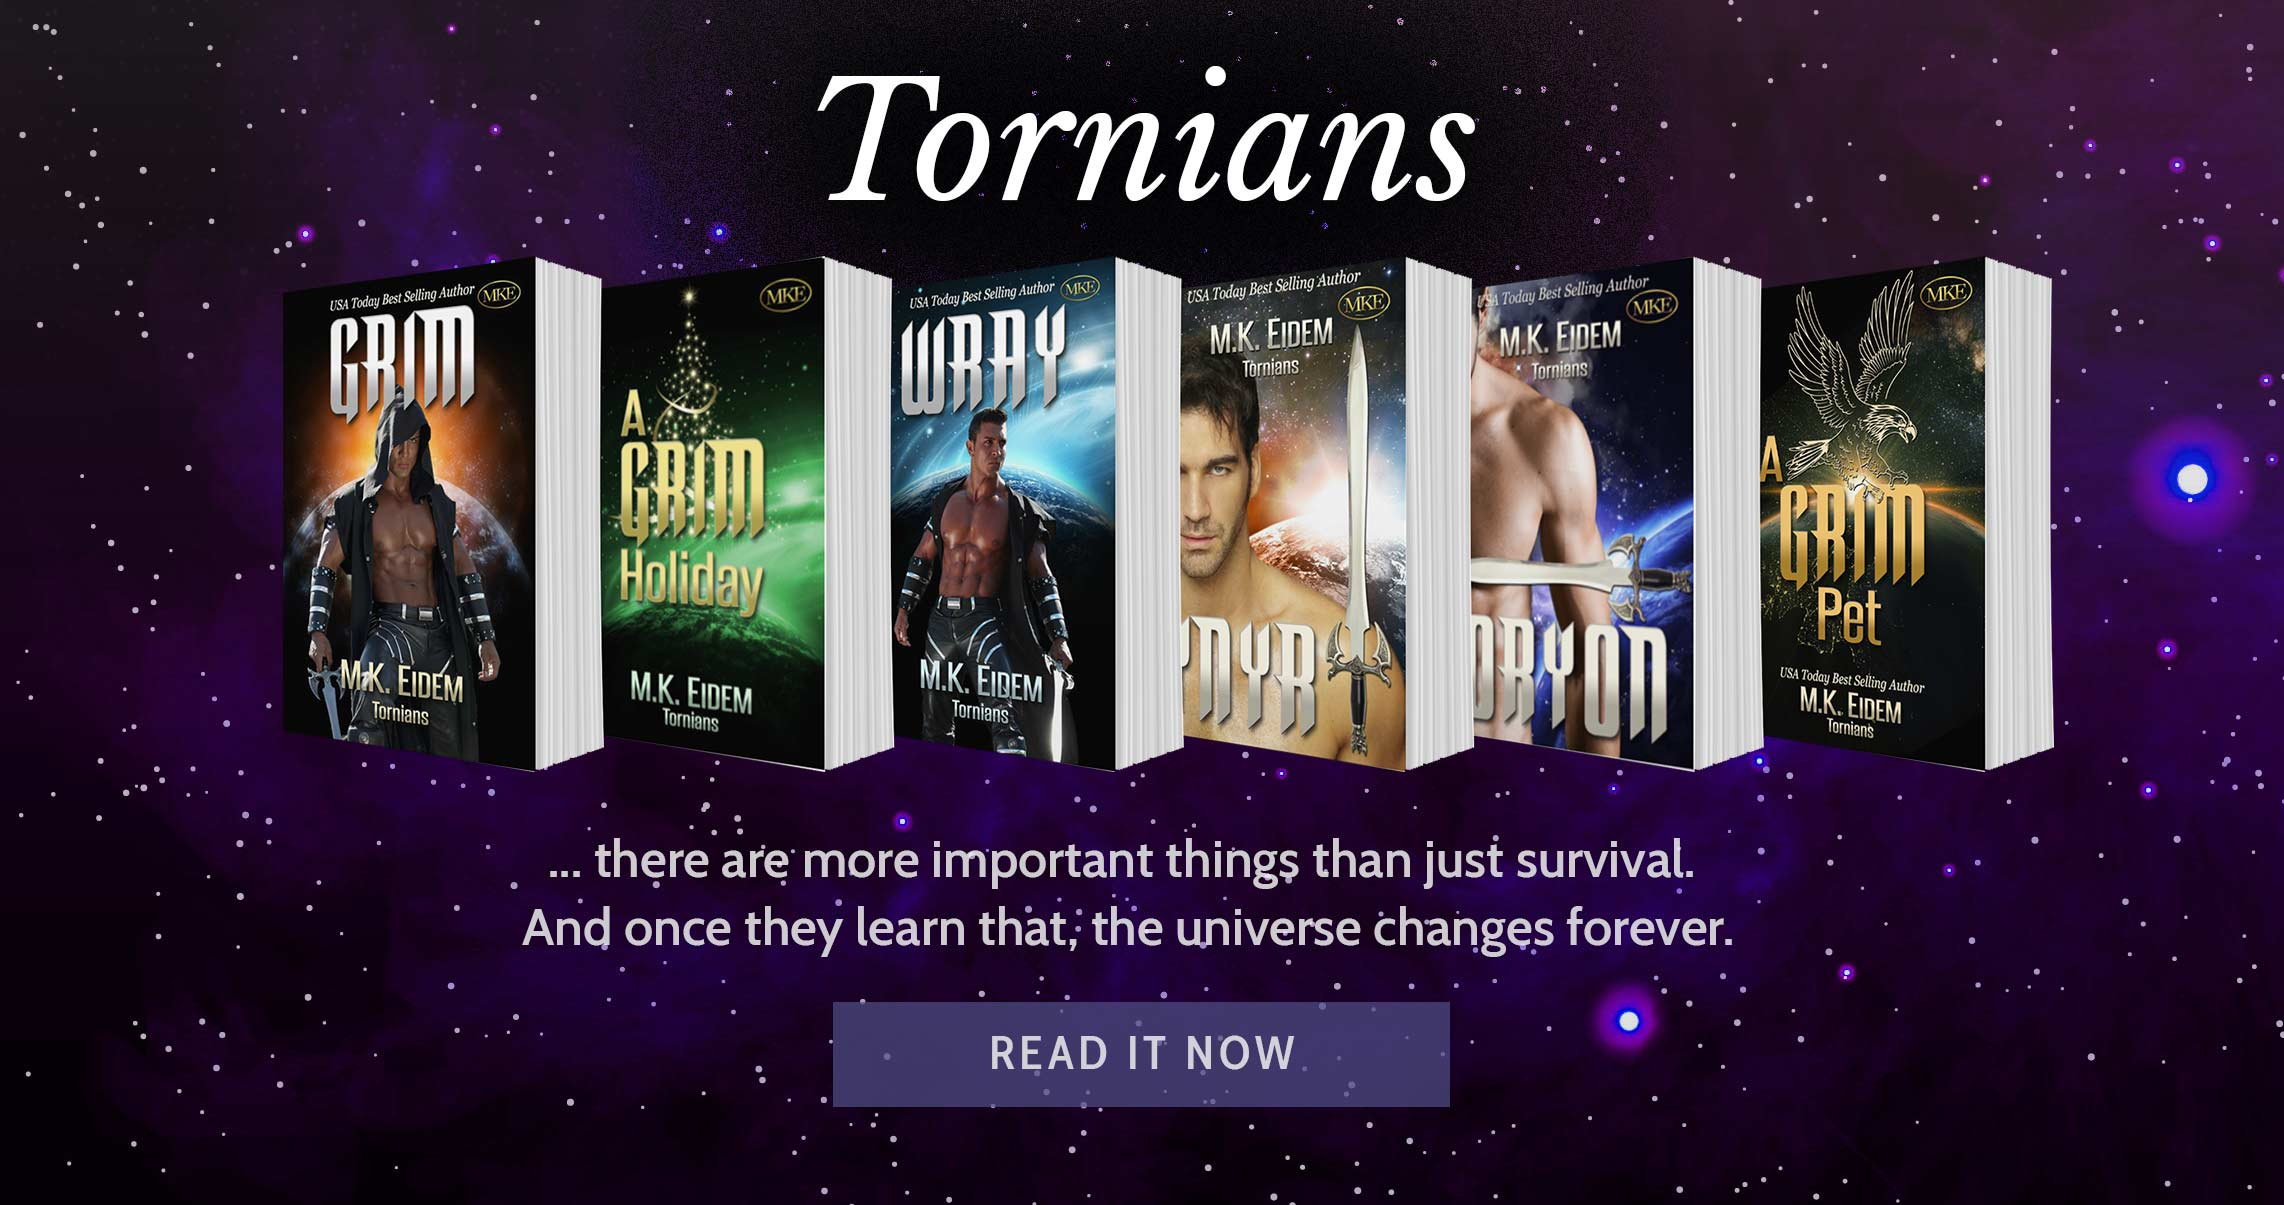 Tornians - A Sc-Fi Romance Series from USA Today Bestselling Author M.K.Eidem